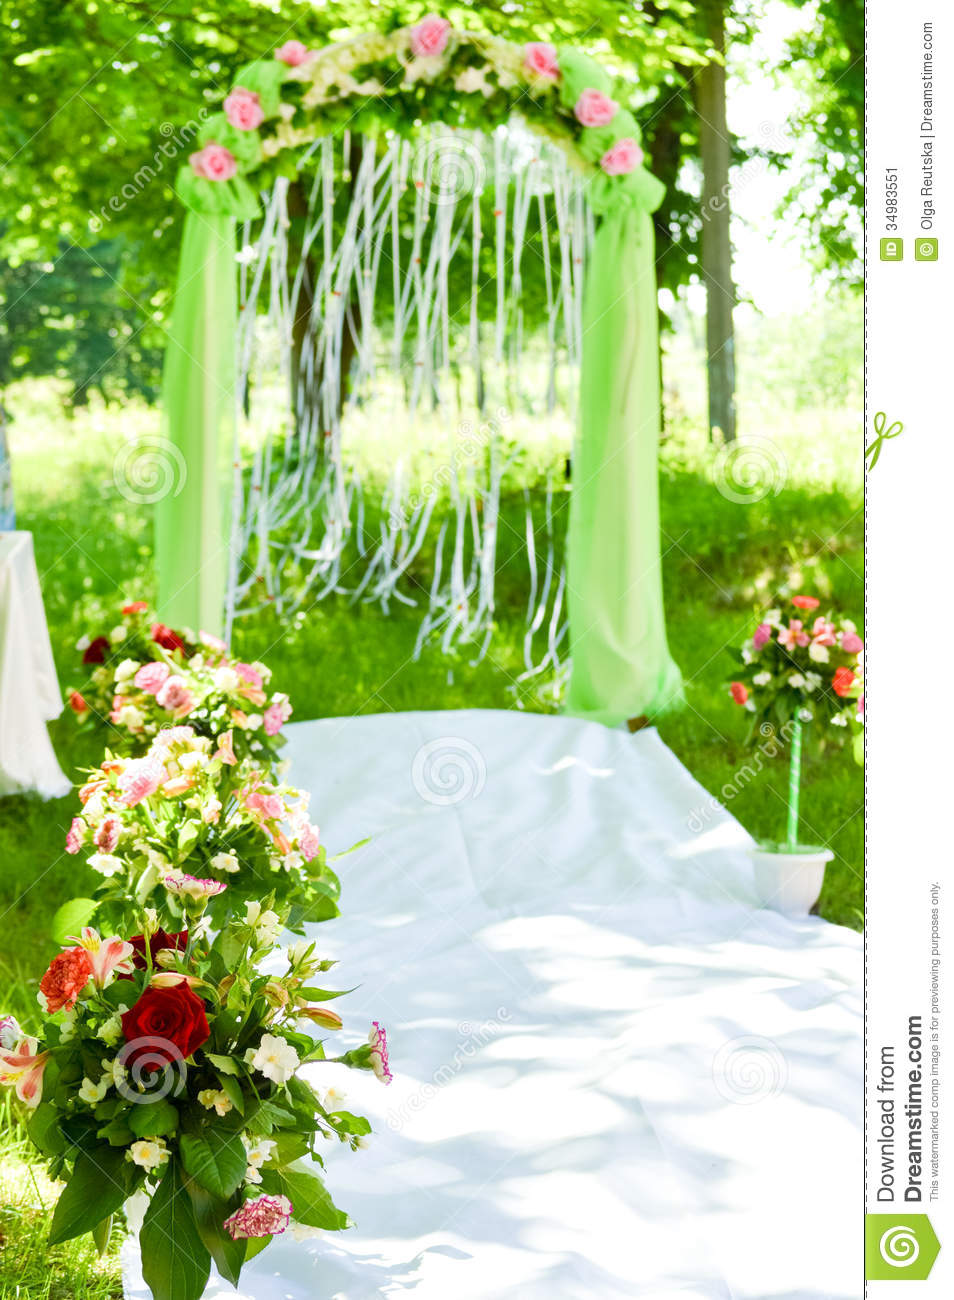 Wedding Ceremony Arch Decoration Stock Image - Image: 34983551